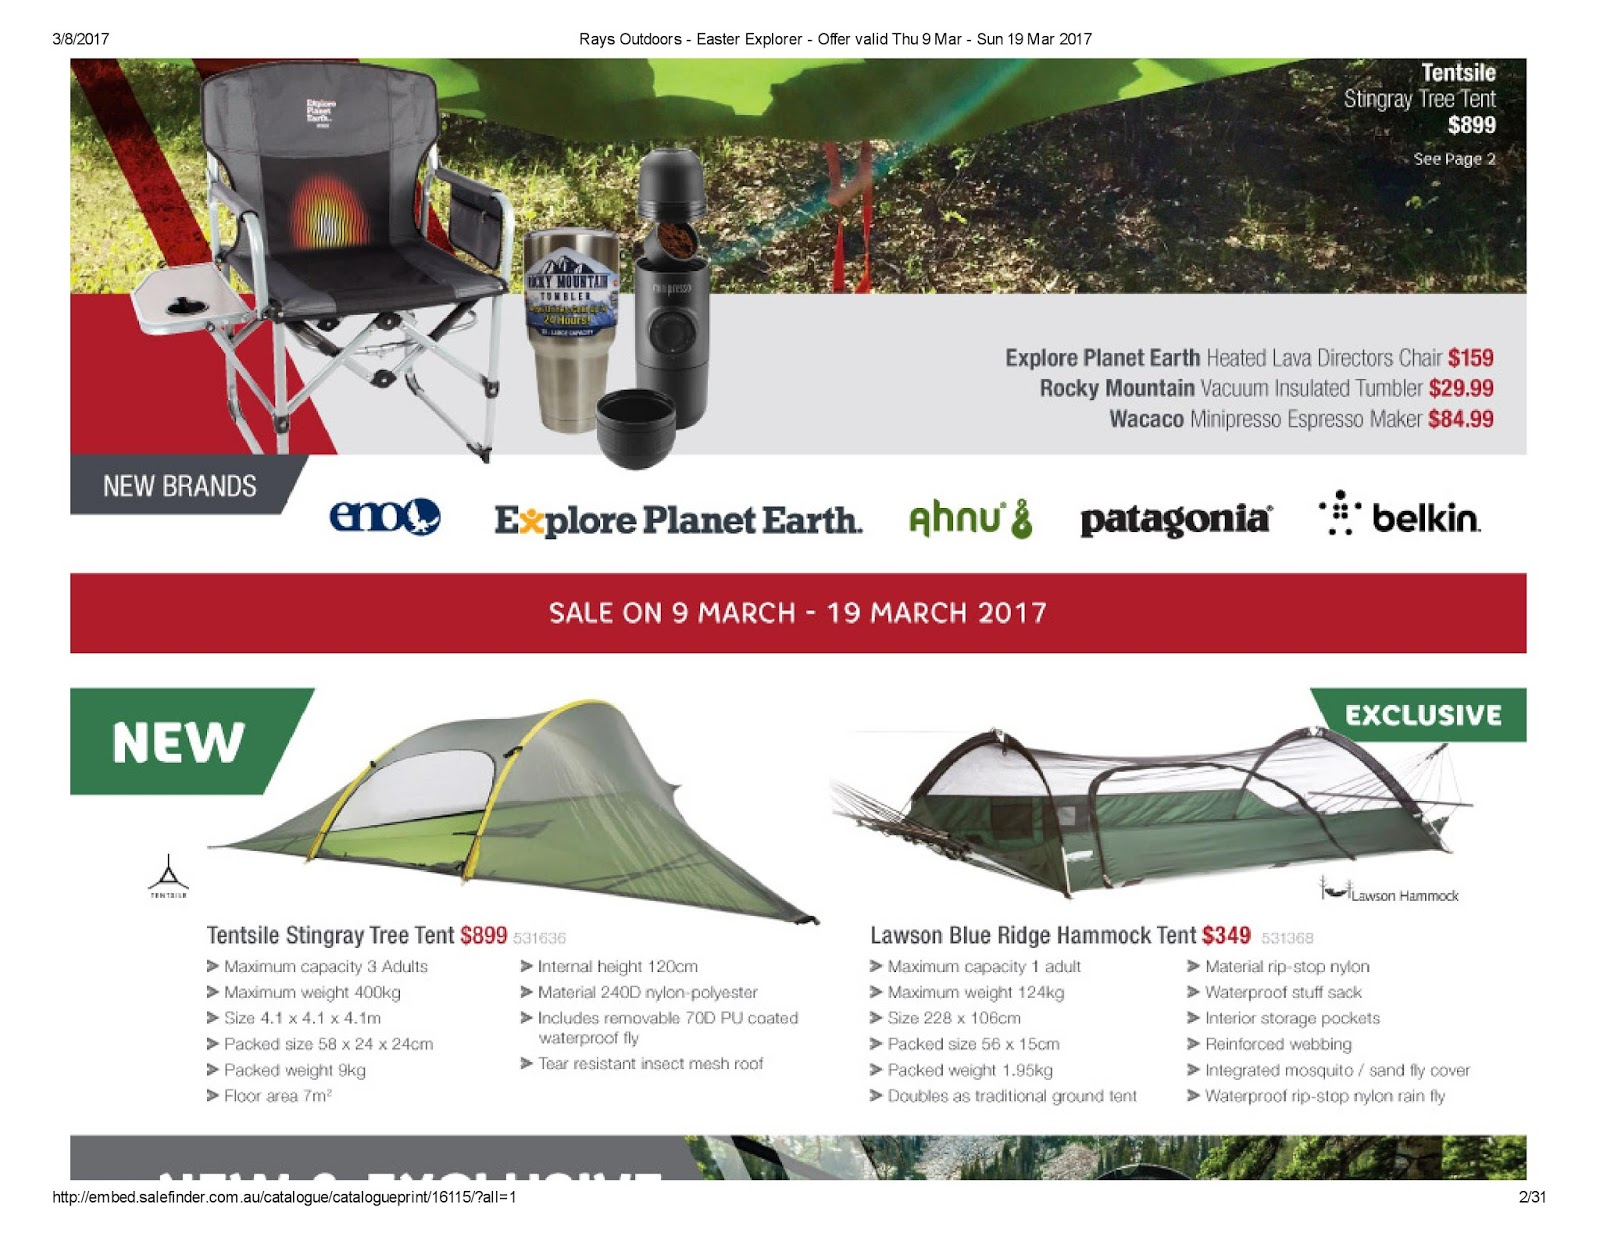 Rays Outdoors Catalogue 9 u2013 19 March 2017  sc 1 st  Australian Catalogues & Rays Outdoors Catalogue 9 u2013 19 March 2017 | Australian Catalogues